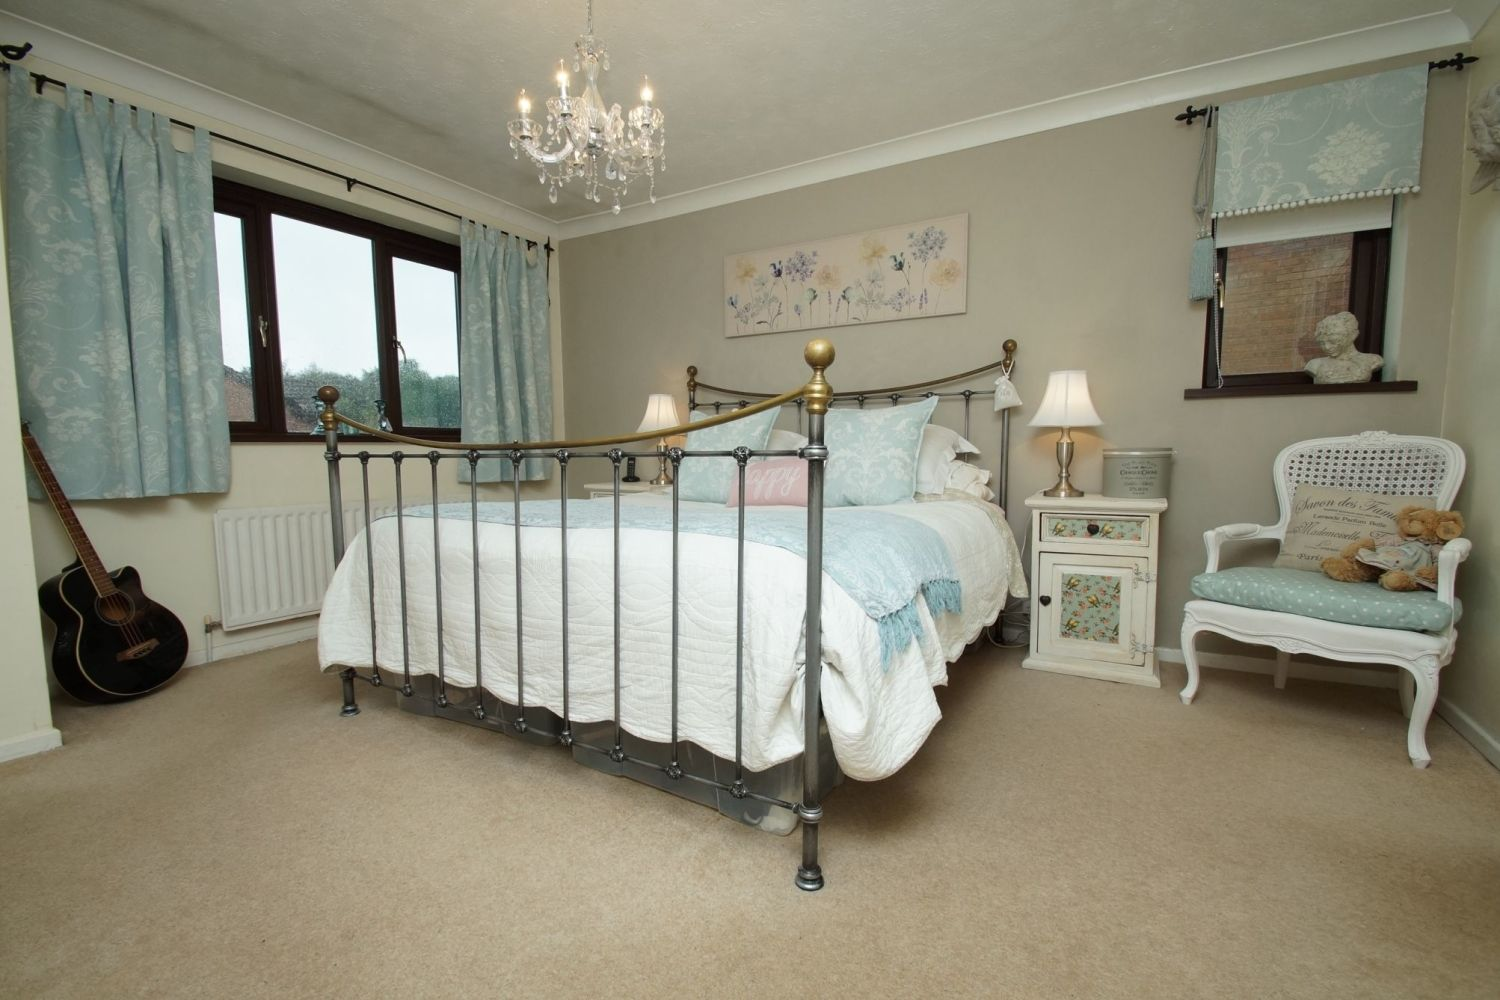 5 bed detached for sale in Melrose Avenue, Oldswinford, Stourbridge 8